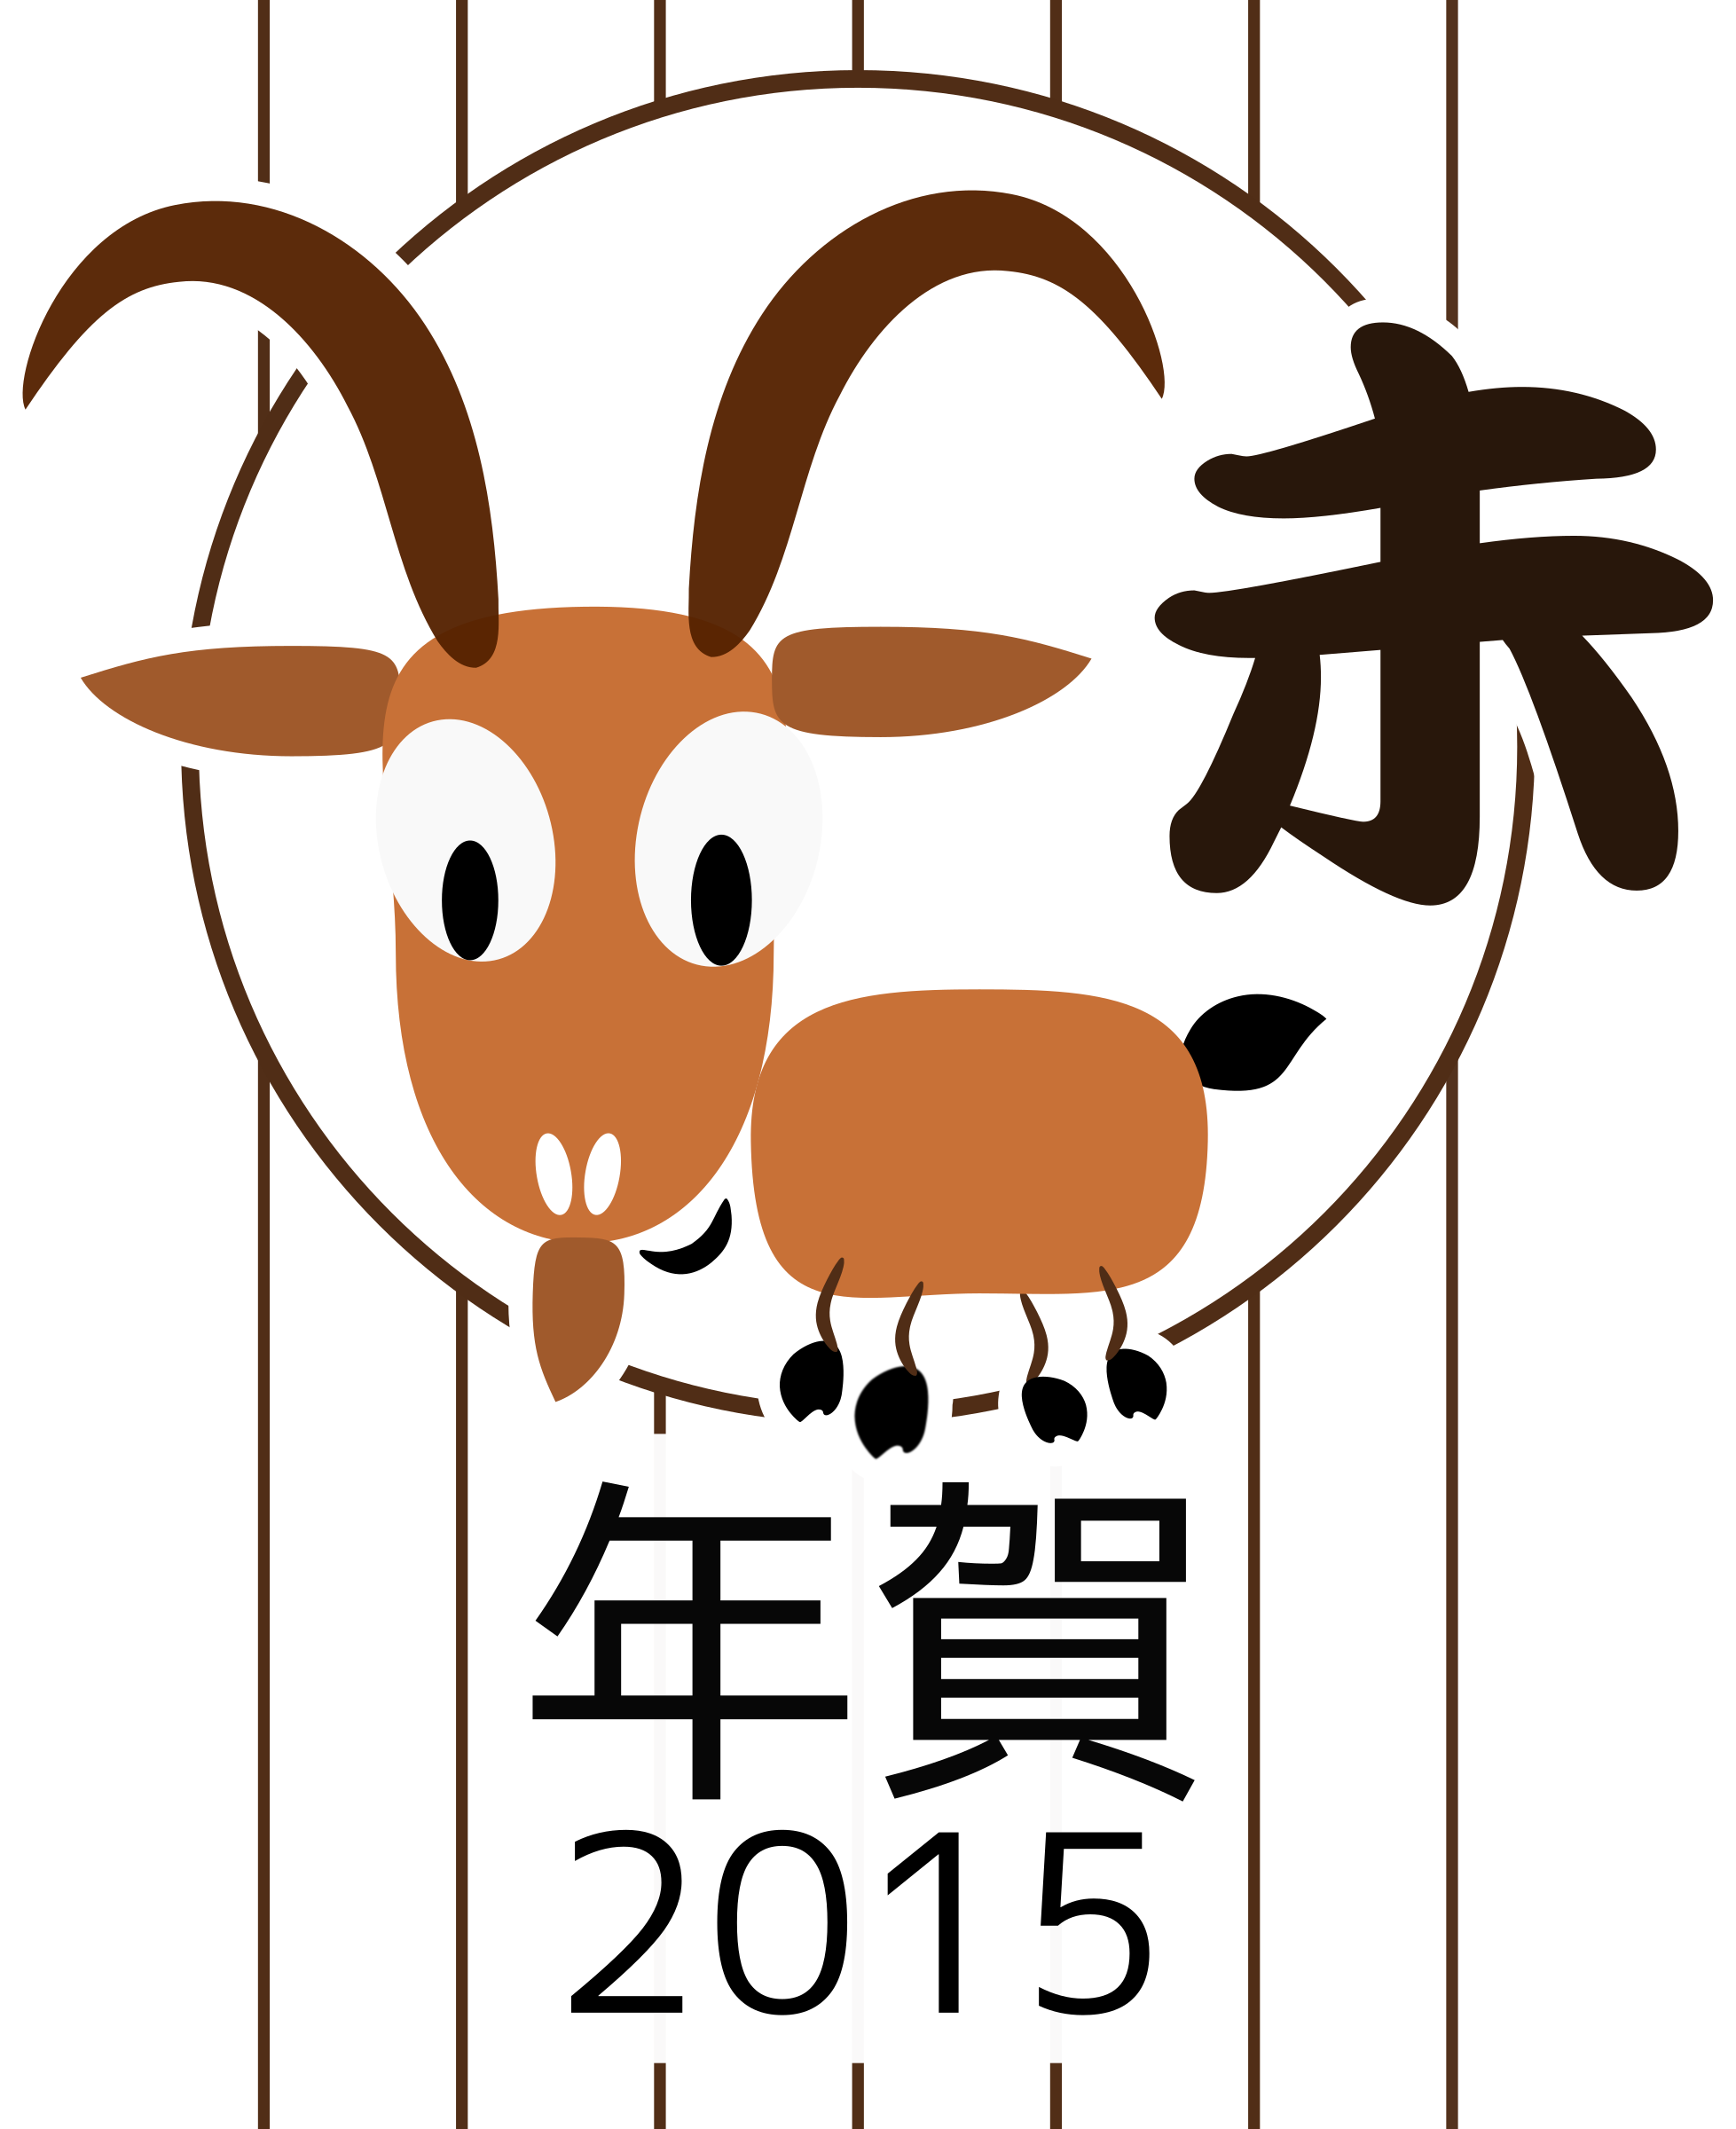 Chinese zodiac goat - Japanese version - 2015 by uroesch